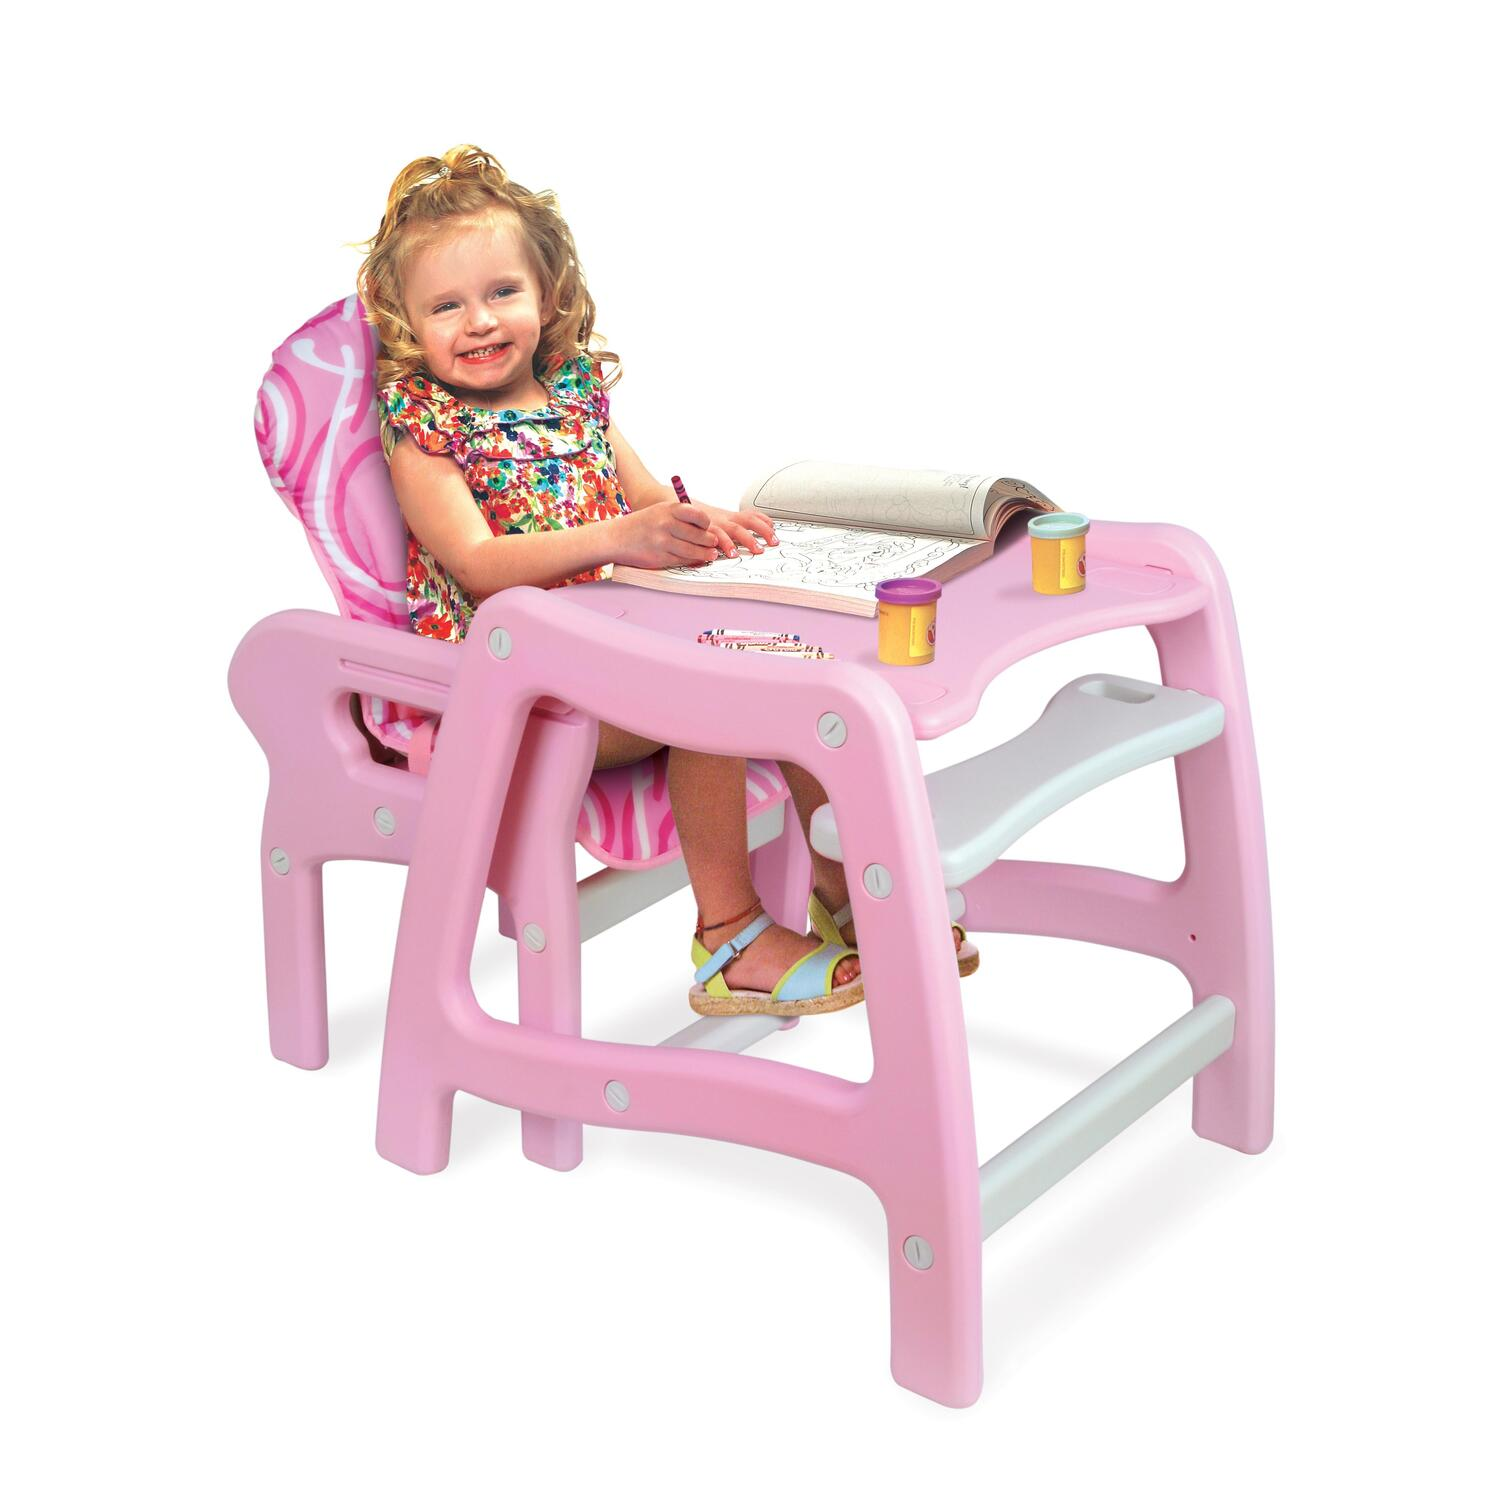 Envee Baby High Chair With Playtable Conversion From